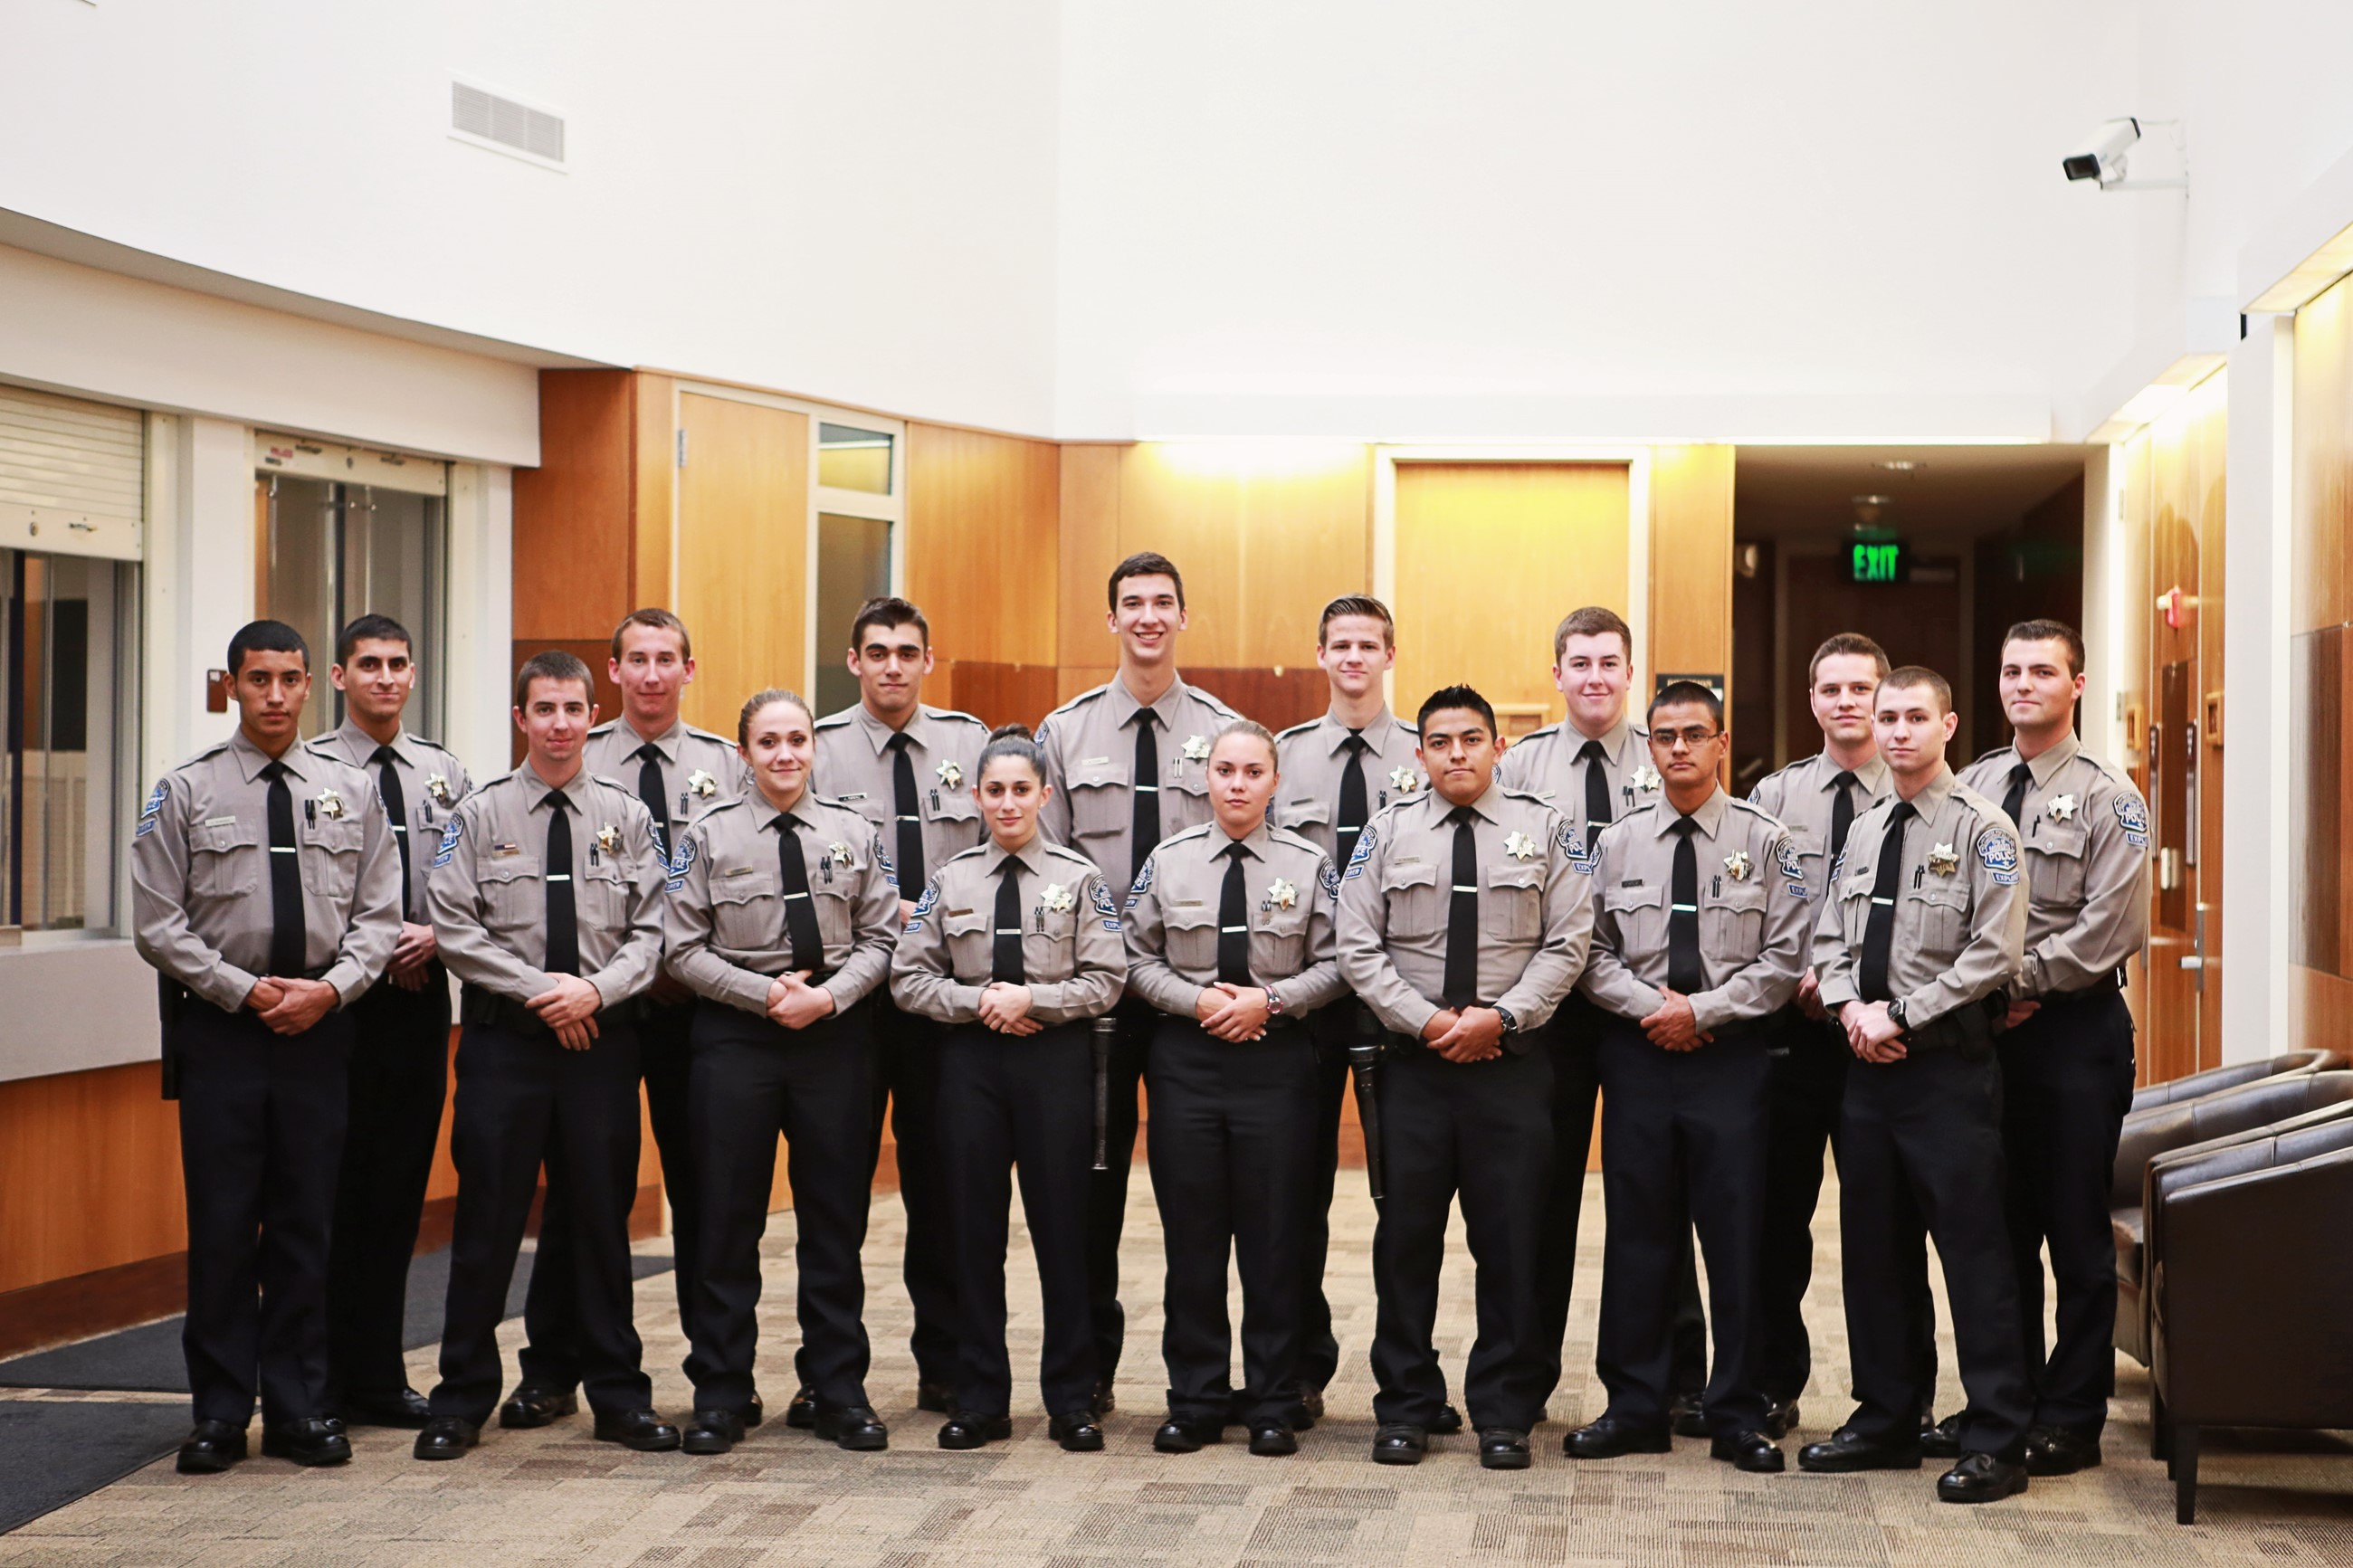 Modesto Police Department Explorer Post 219 Group Photo